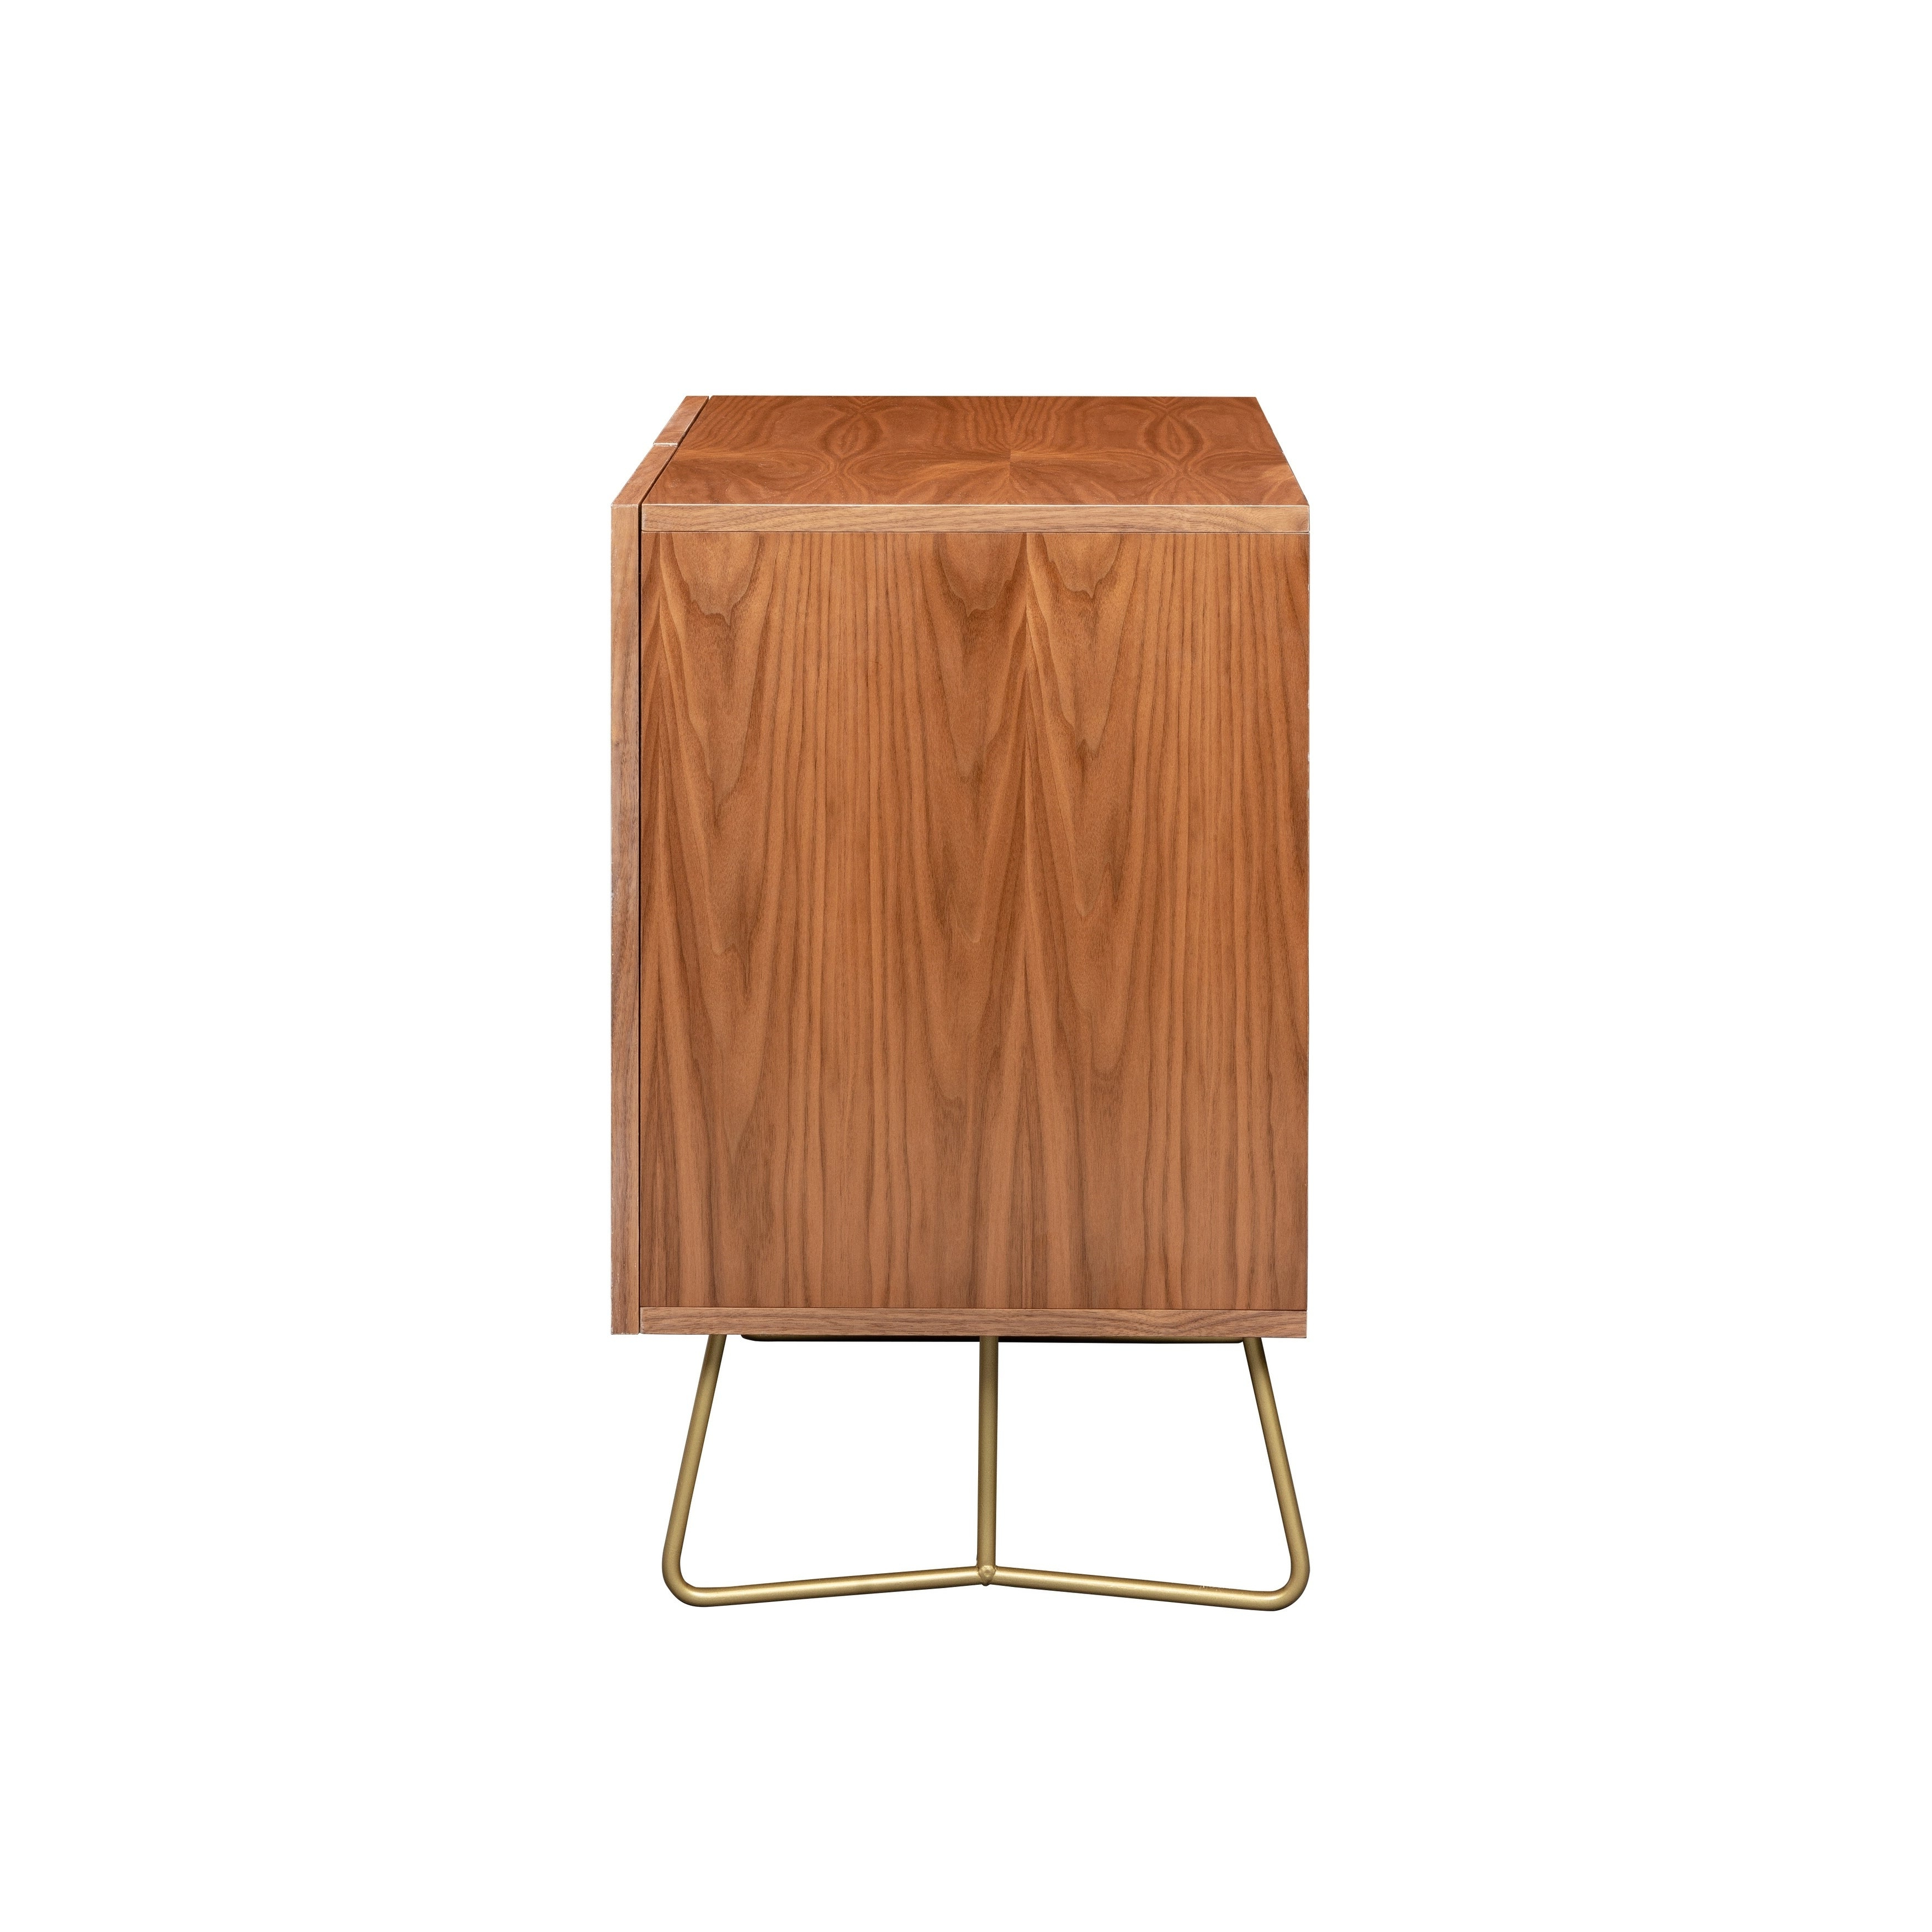 Deny Designs Multi Colored Geometric Shapes Credenza (Birch Or Walnut, 3  Leg Options) Inside Multi Colored Geometric Shapes Credenzas (View 7 of 20)